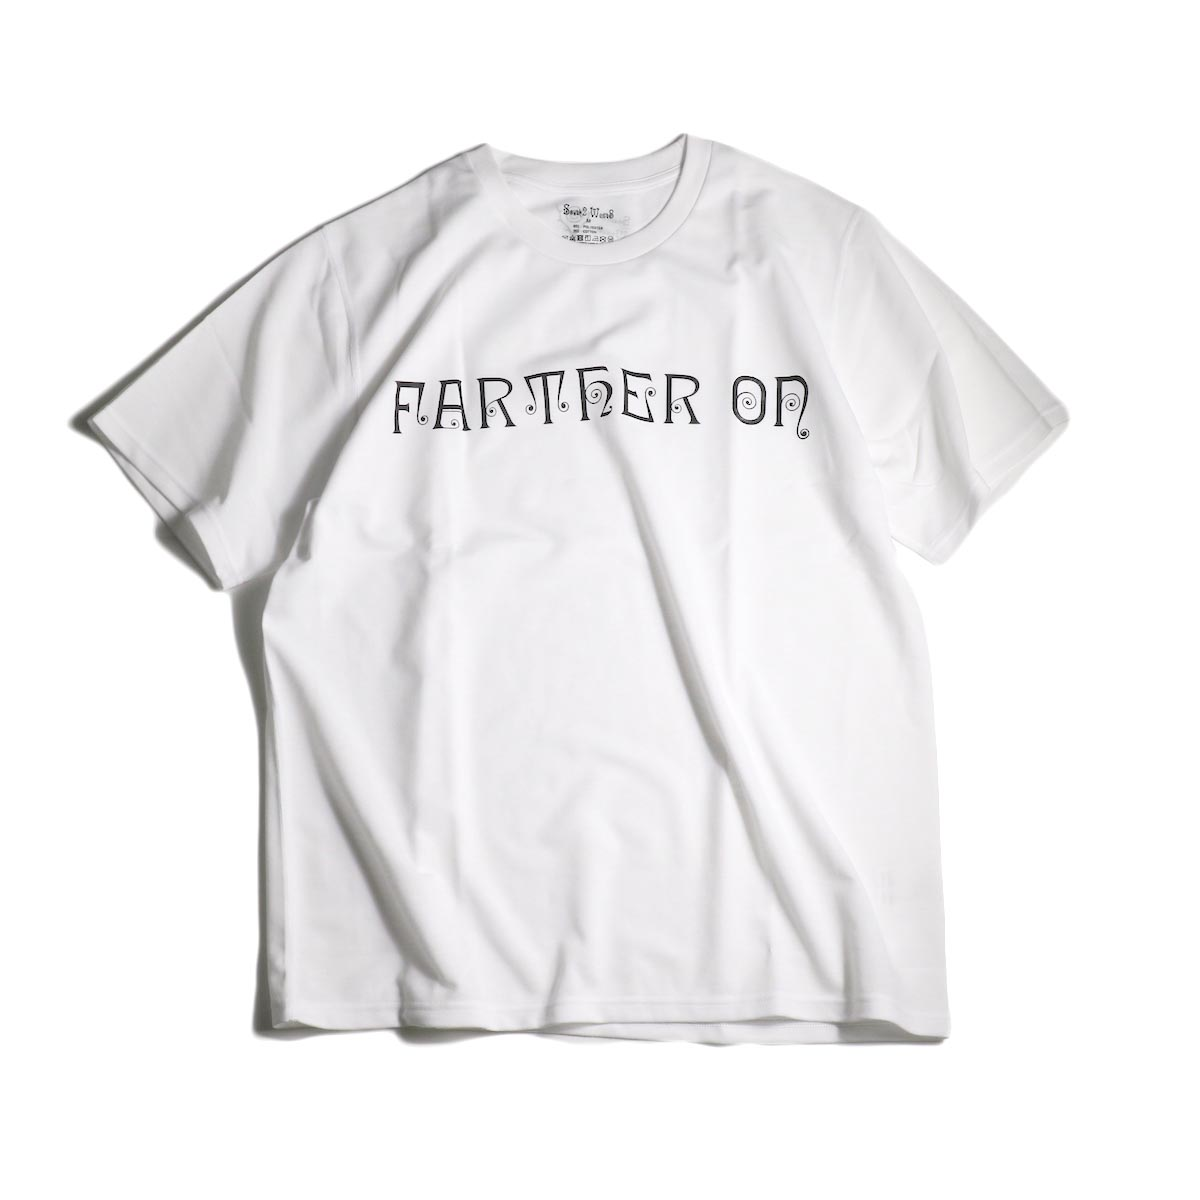 South2 West8 / S/S CREW NECK TEE - PE/C JERSEY / FARTHER ON (White)